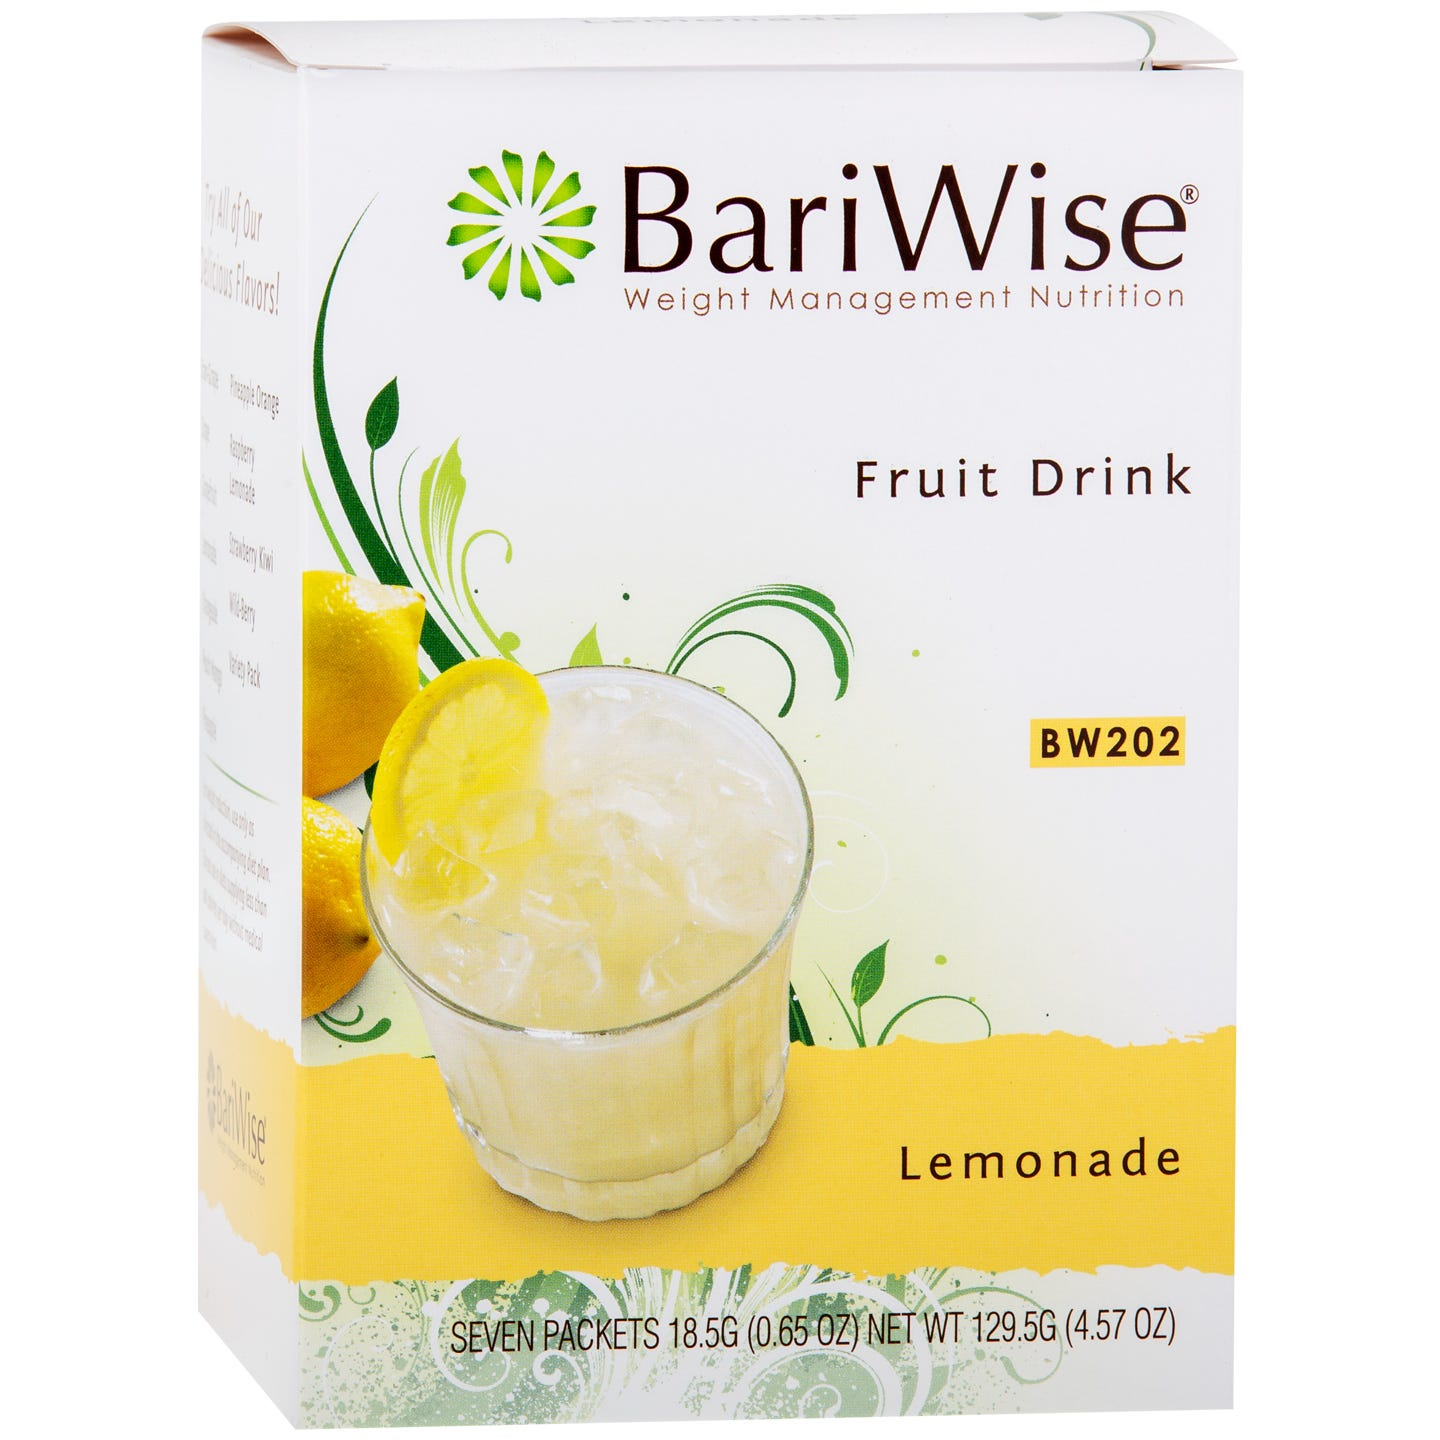 Protein Diet Fruit Drink Lemonade (7 Ct) - BariWise